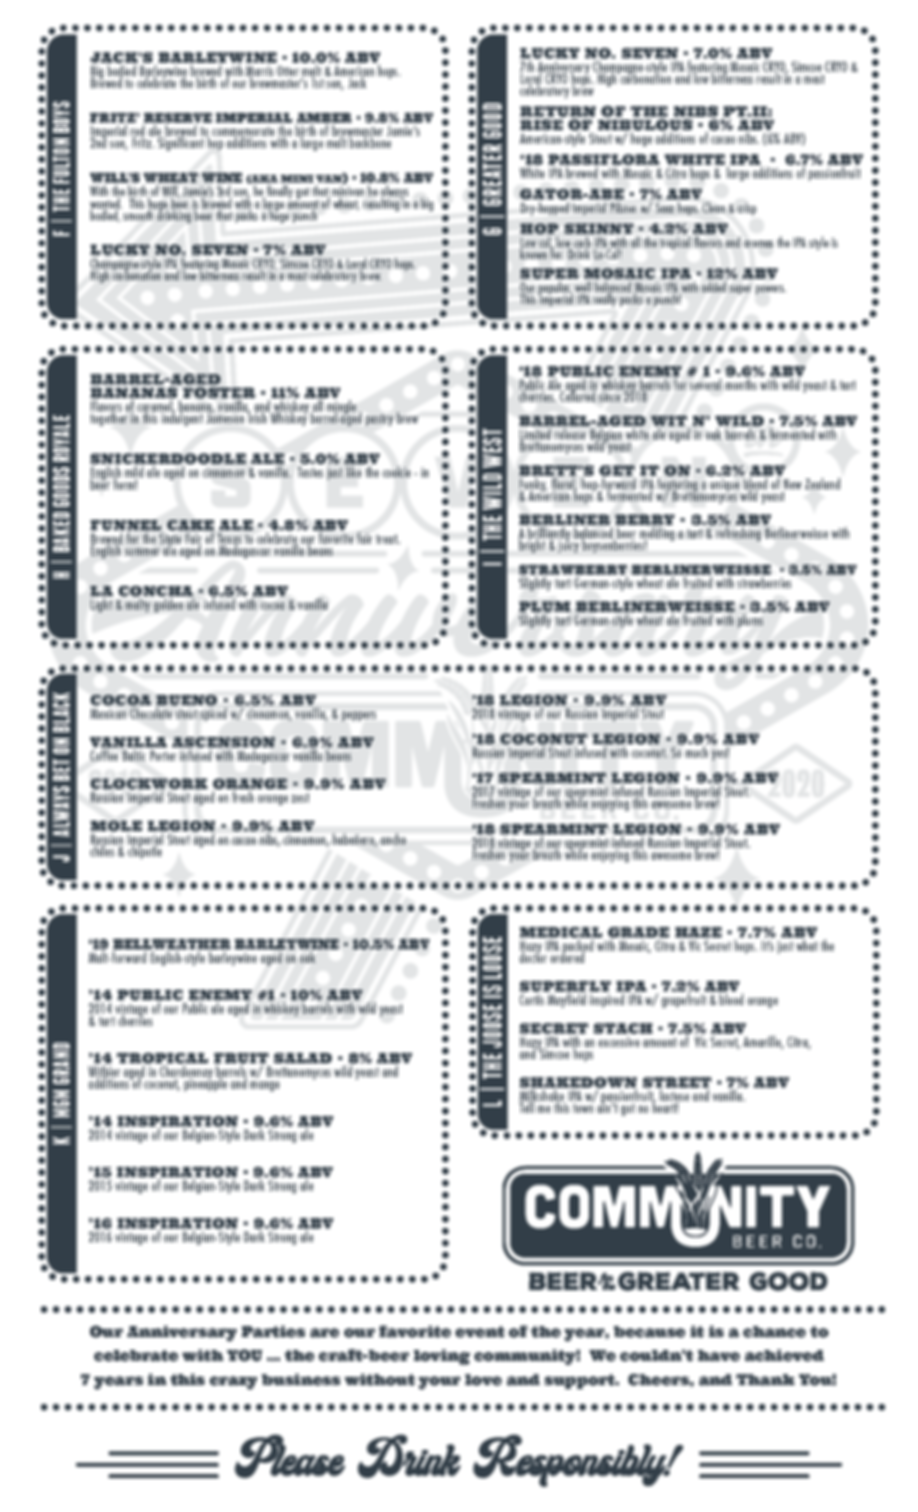 7th_Anniversary_BeerList-Web_Page_2.png